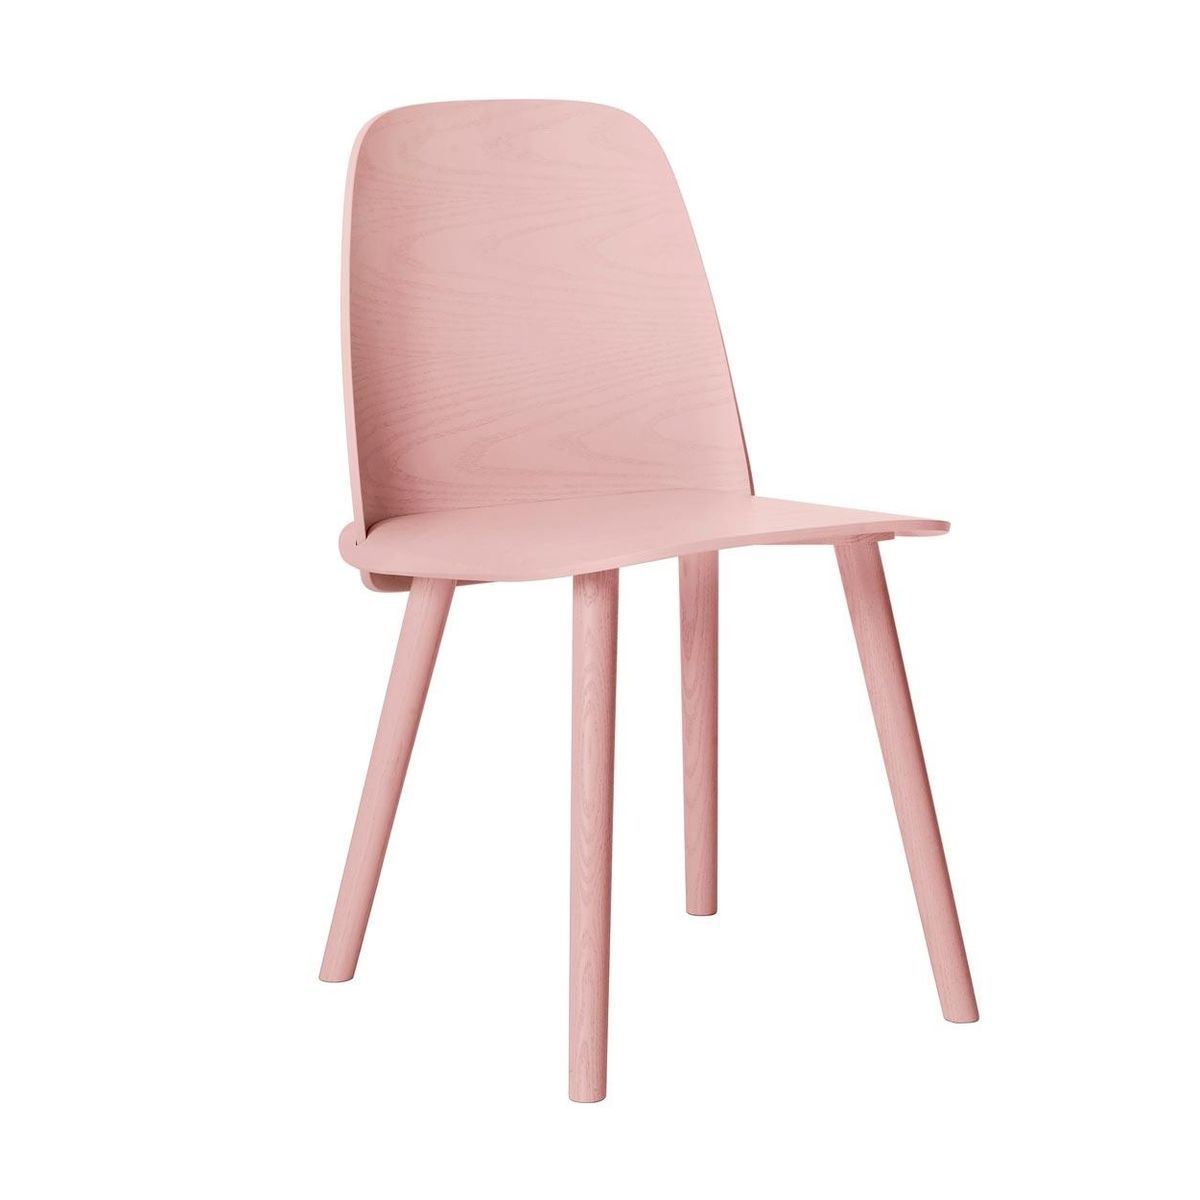 Muuto - Nerd Chair - ash rose/lacquered